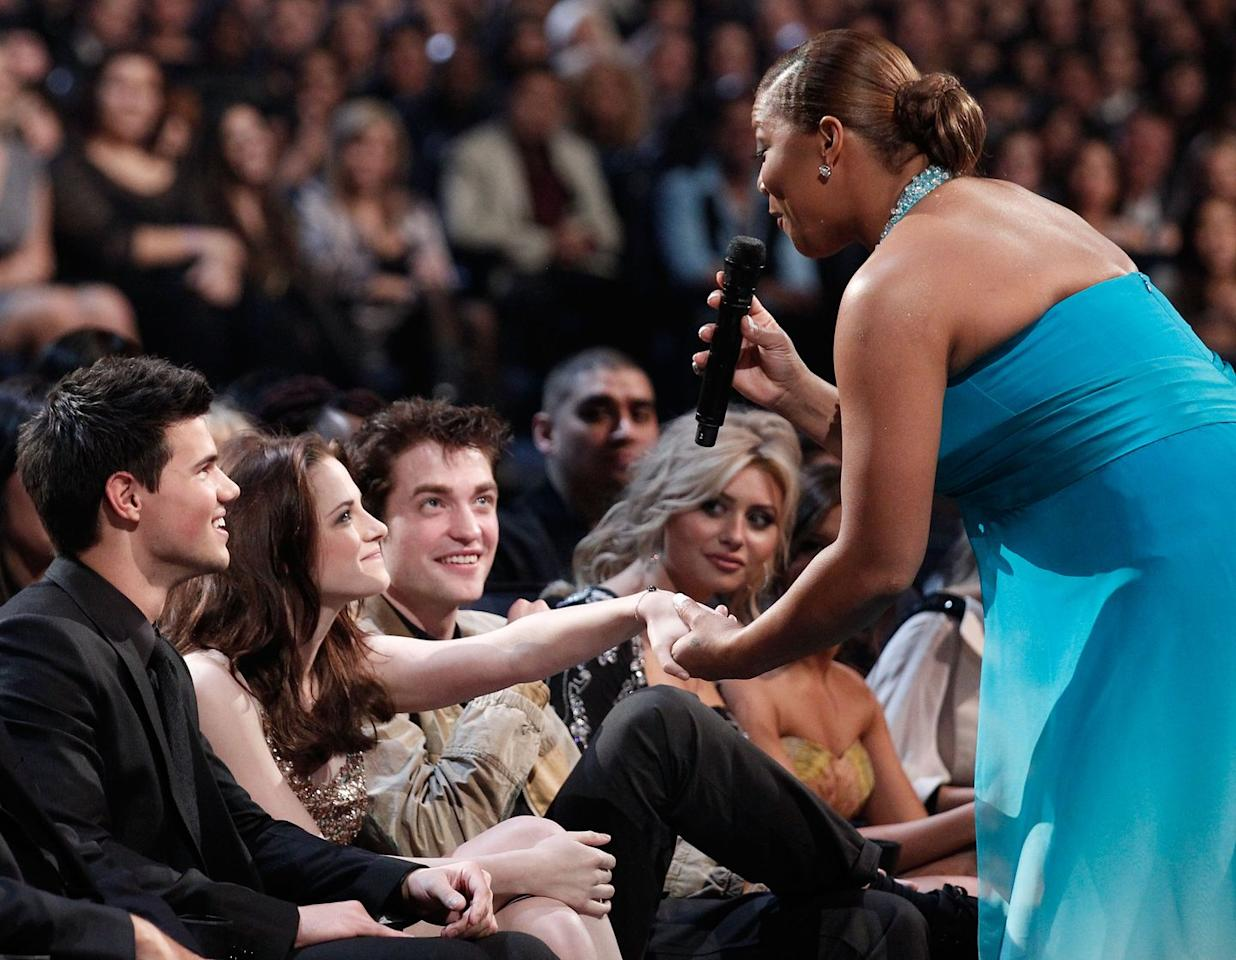 """<p><strong>When:</strong> 2011</p><p><strong>What happened:</strong> Host Queen Latifah geeked out over seeing <em>Twilight</em> stars Taylor Lautner, Kristen Stewart, and Robert Pattinson. It was a <a href=""""https://www.youtube.com/watch?v=QgYQ543XDLM"""" target=""""_blank"""">painfully scripted moment</a> and you could see the uneasiness on the actors' faces. She also kept calling them by their characters' names, not they're actual names.</p>"""